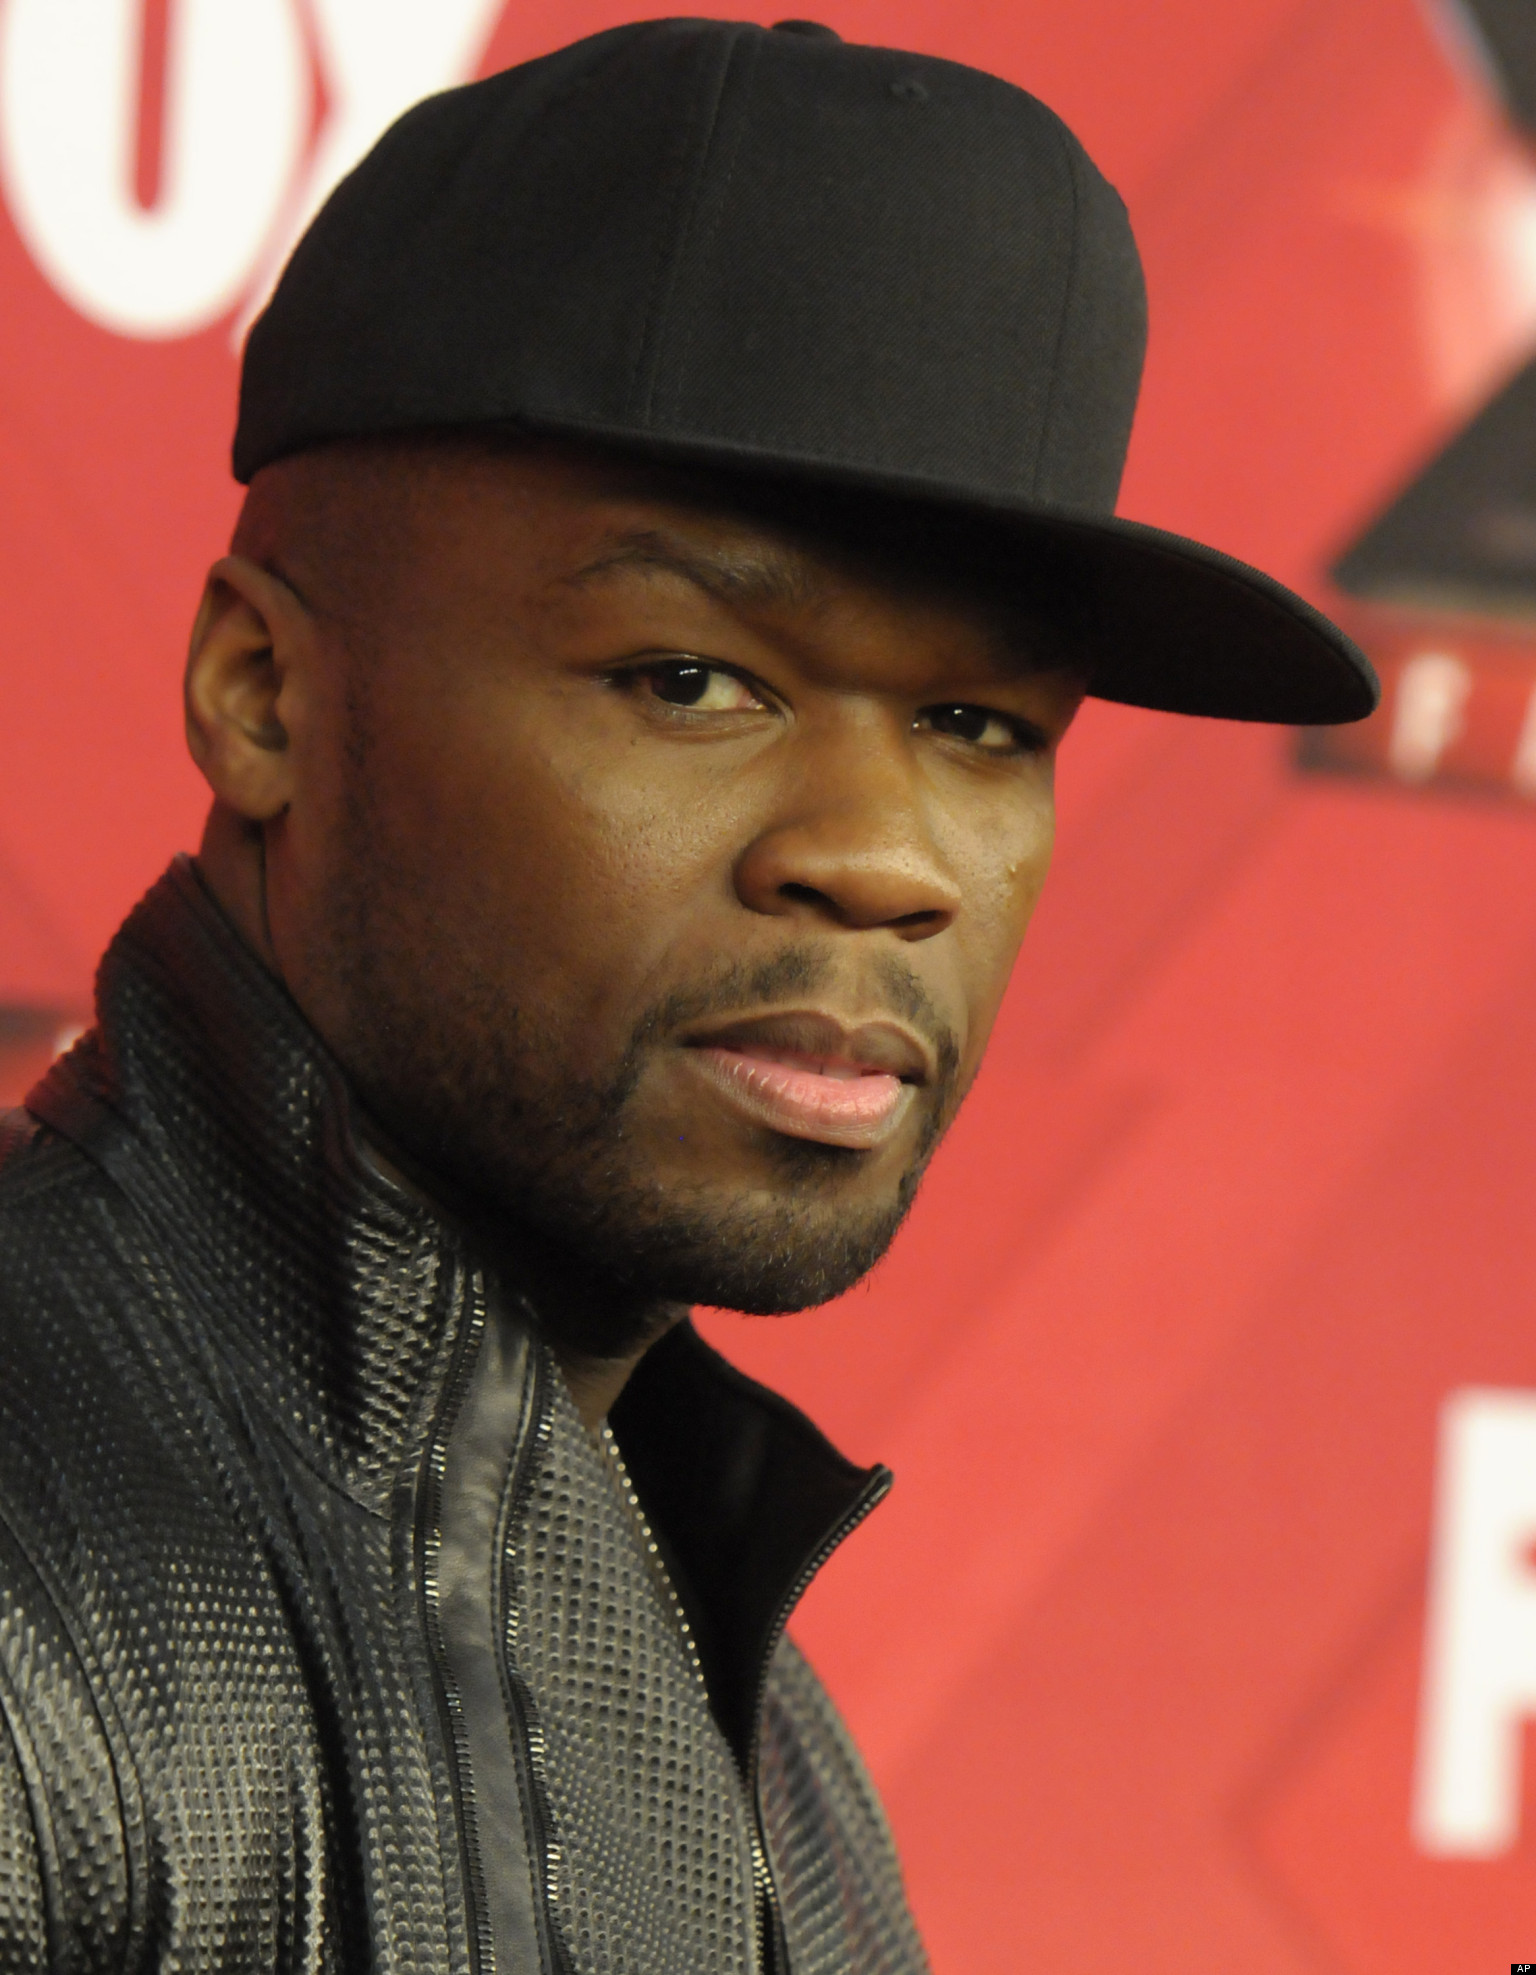 50 Cent: Get Rich Or Die Tryin' - Music on Google Play